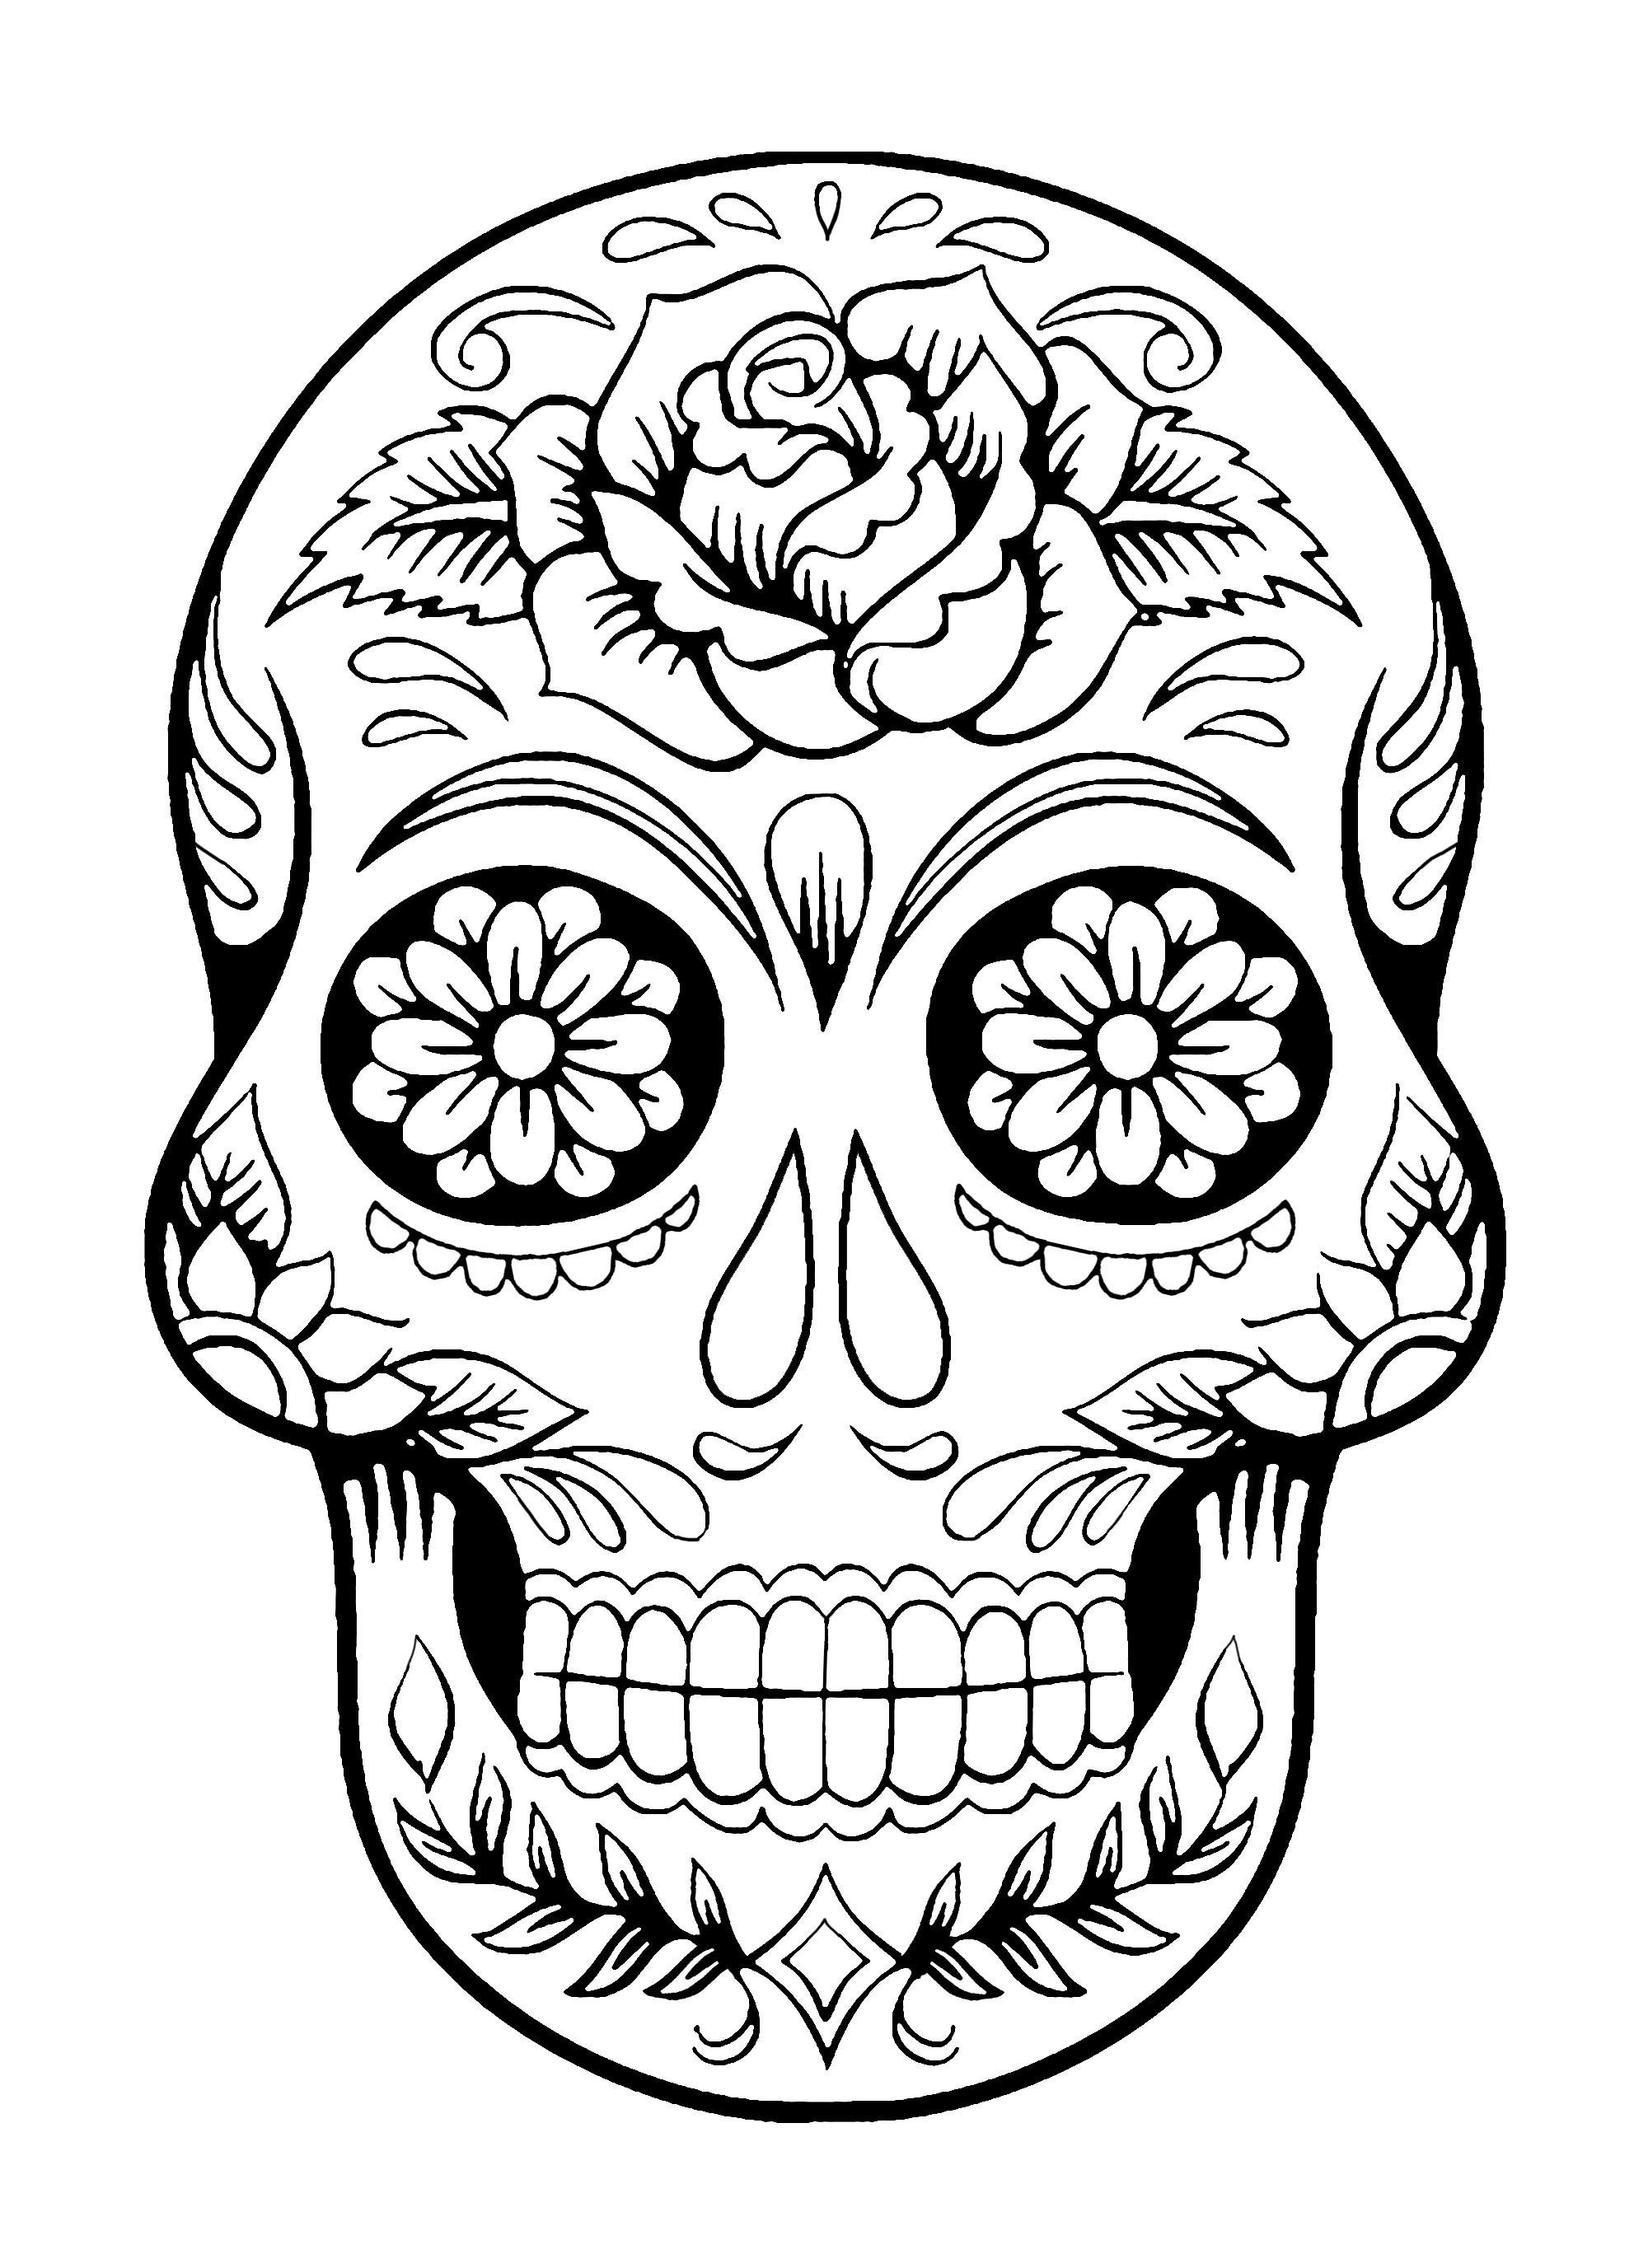 day of the dead coloring sheets free printable day of the dead coloring pages best sheets of dead the coloring day